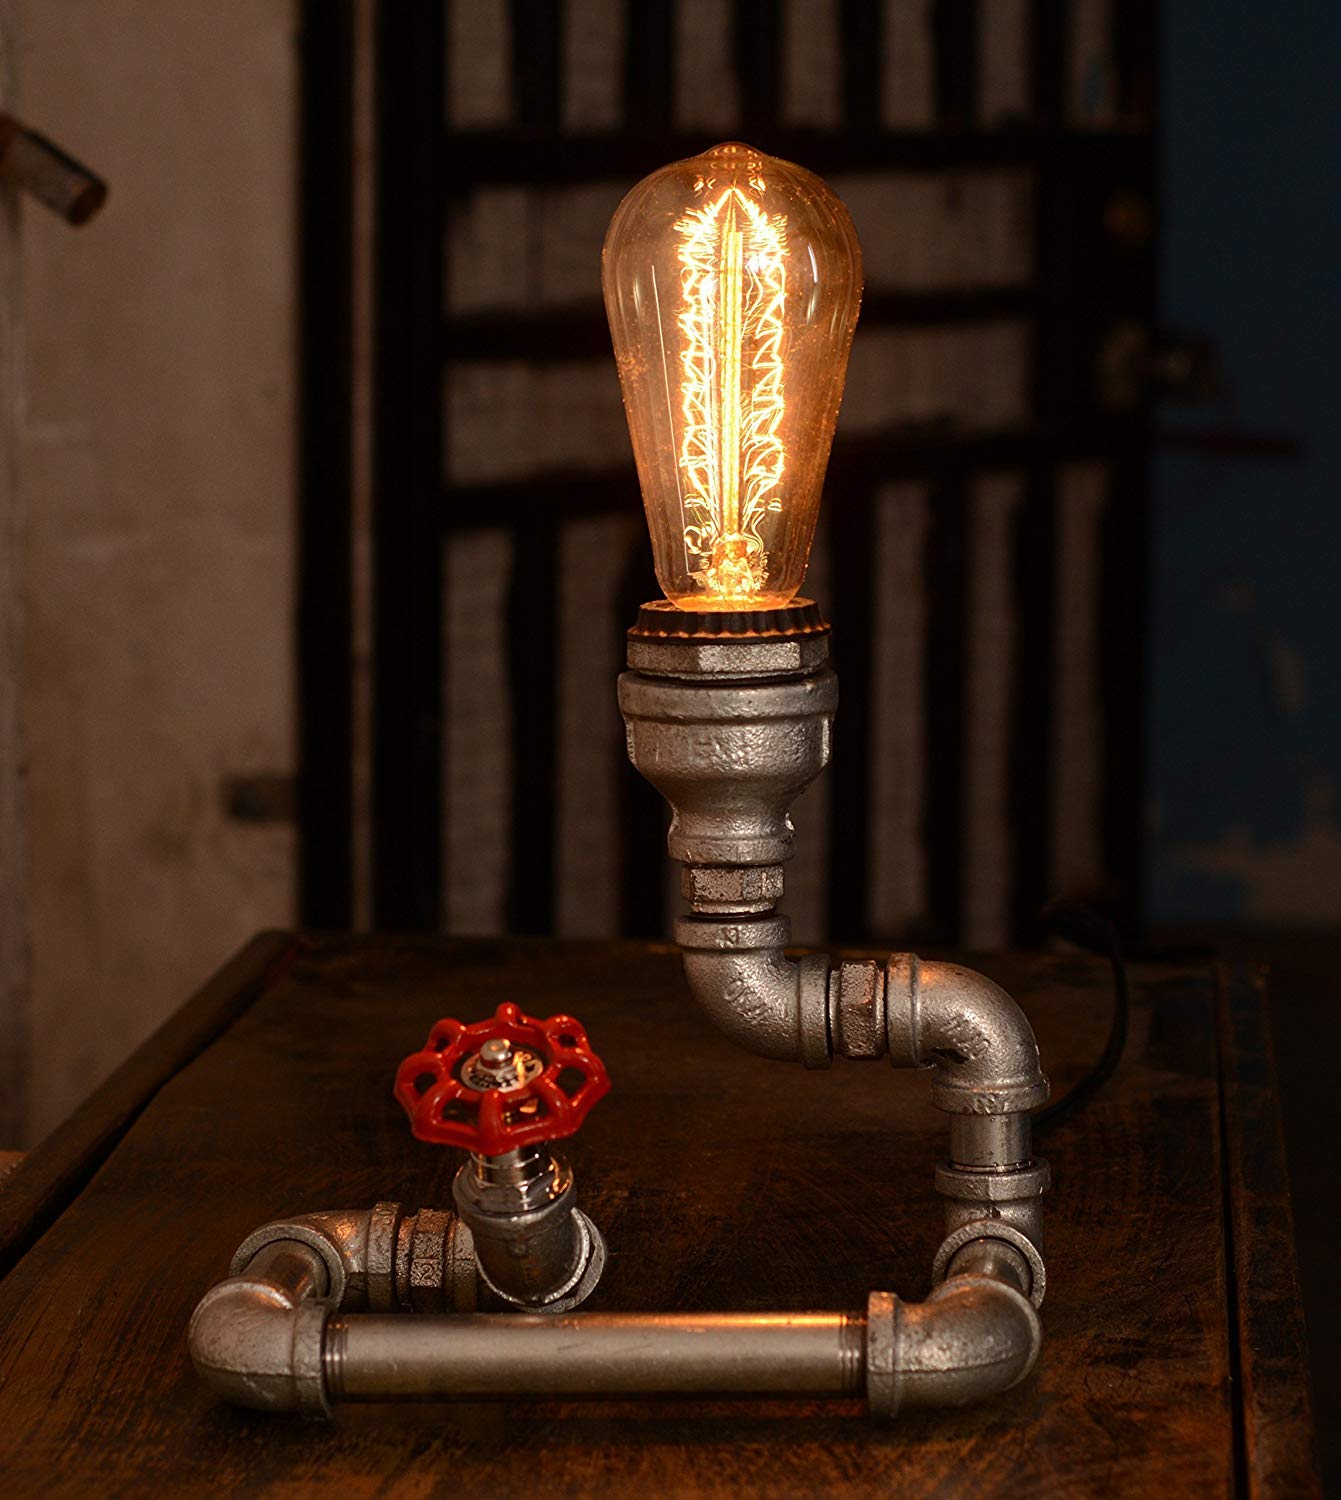 Industrial Lamp, Desk lamp, Antique Table Lamp, Vintage Desk Lamp, Vintage Lighting, Table lamps for Living Room THE BULB IS NOT INCLUDED